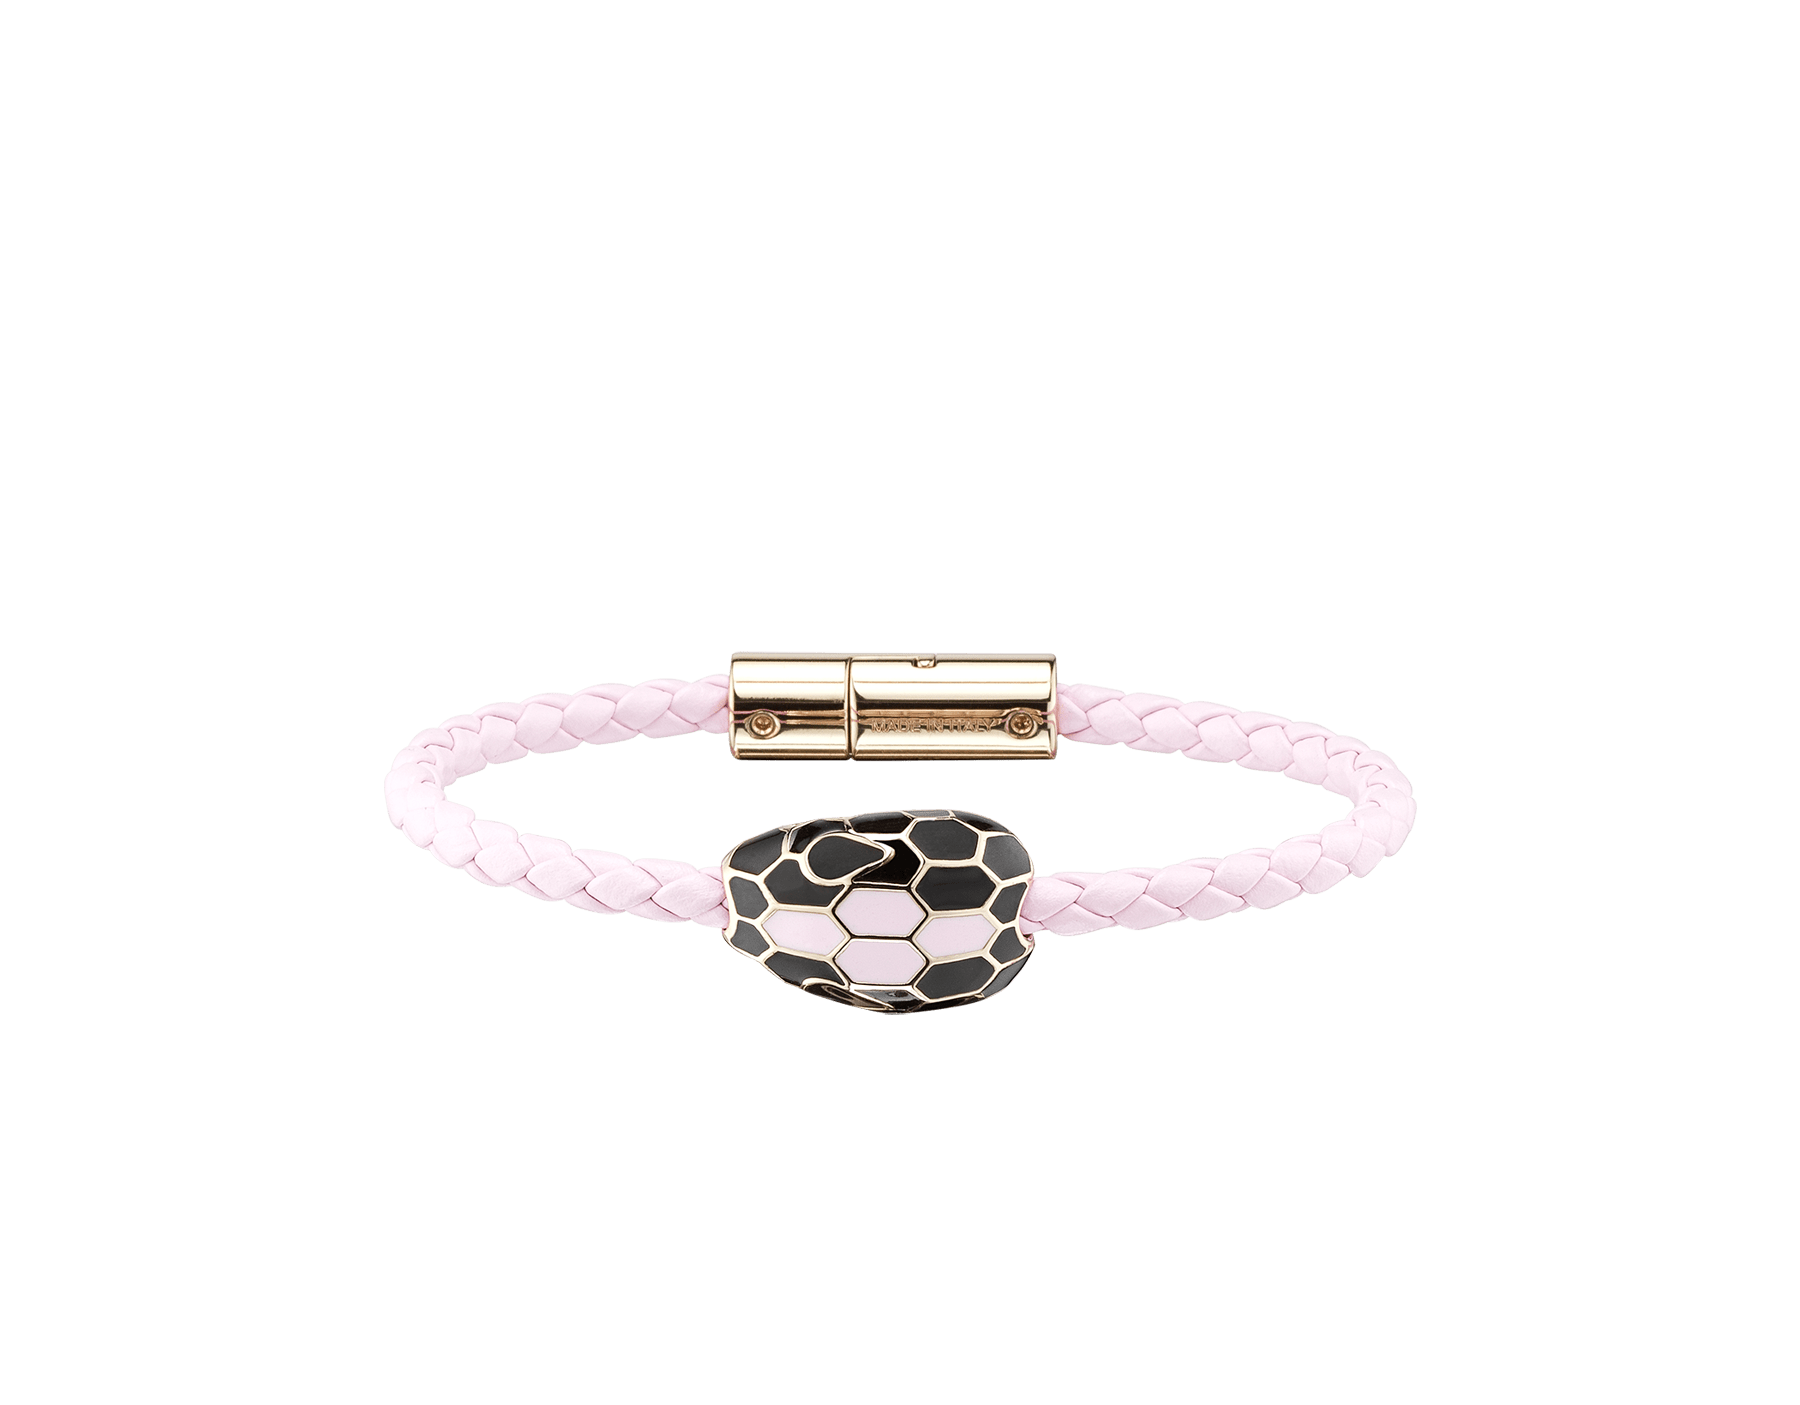 Serpenti Forever braid bracelet in rosa di francia woven calf leather with the iconic snakehead decor in black and rosa di francia enamel. 289010 image 1